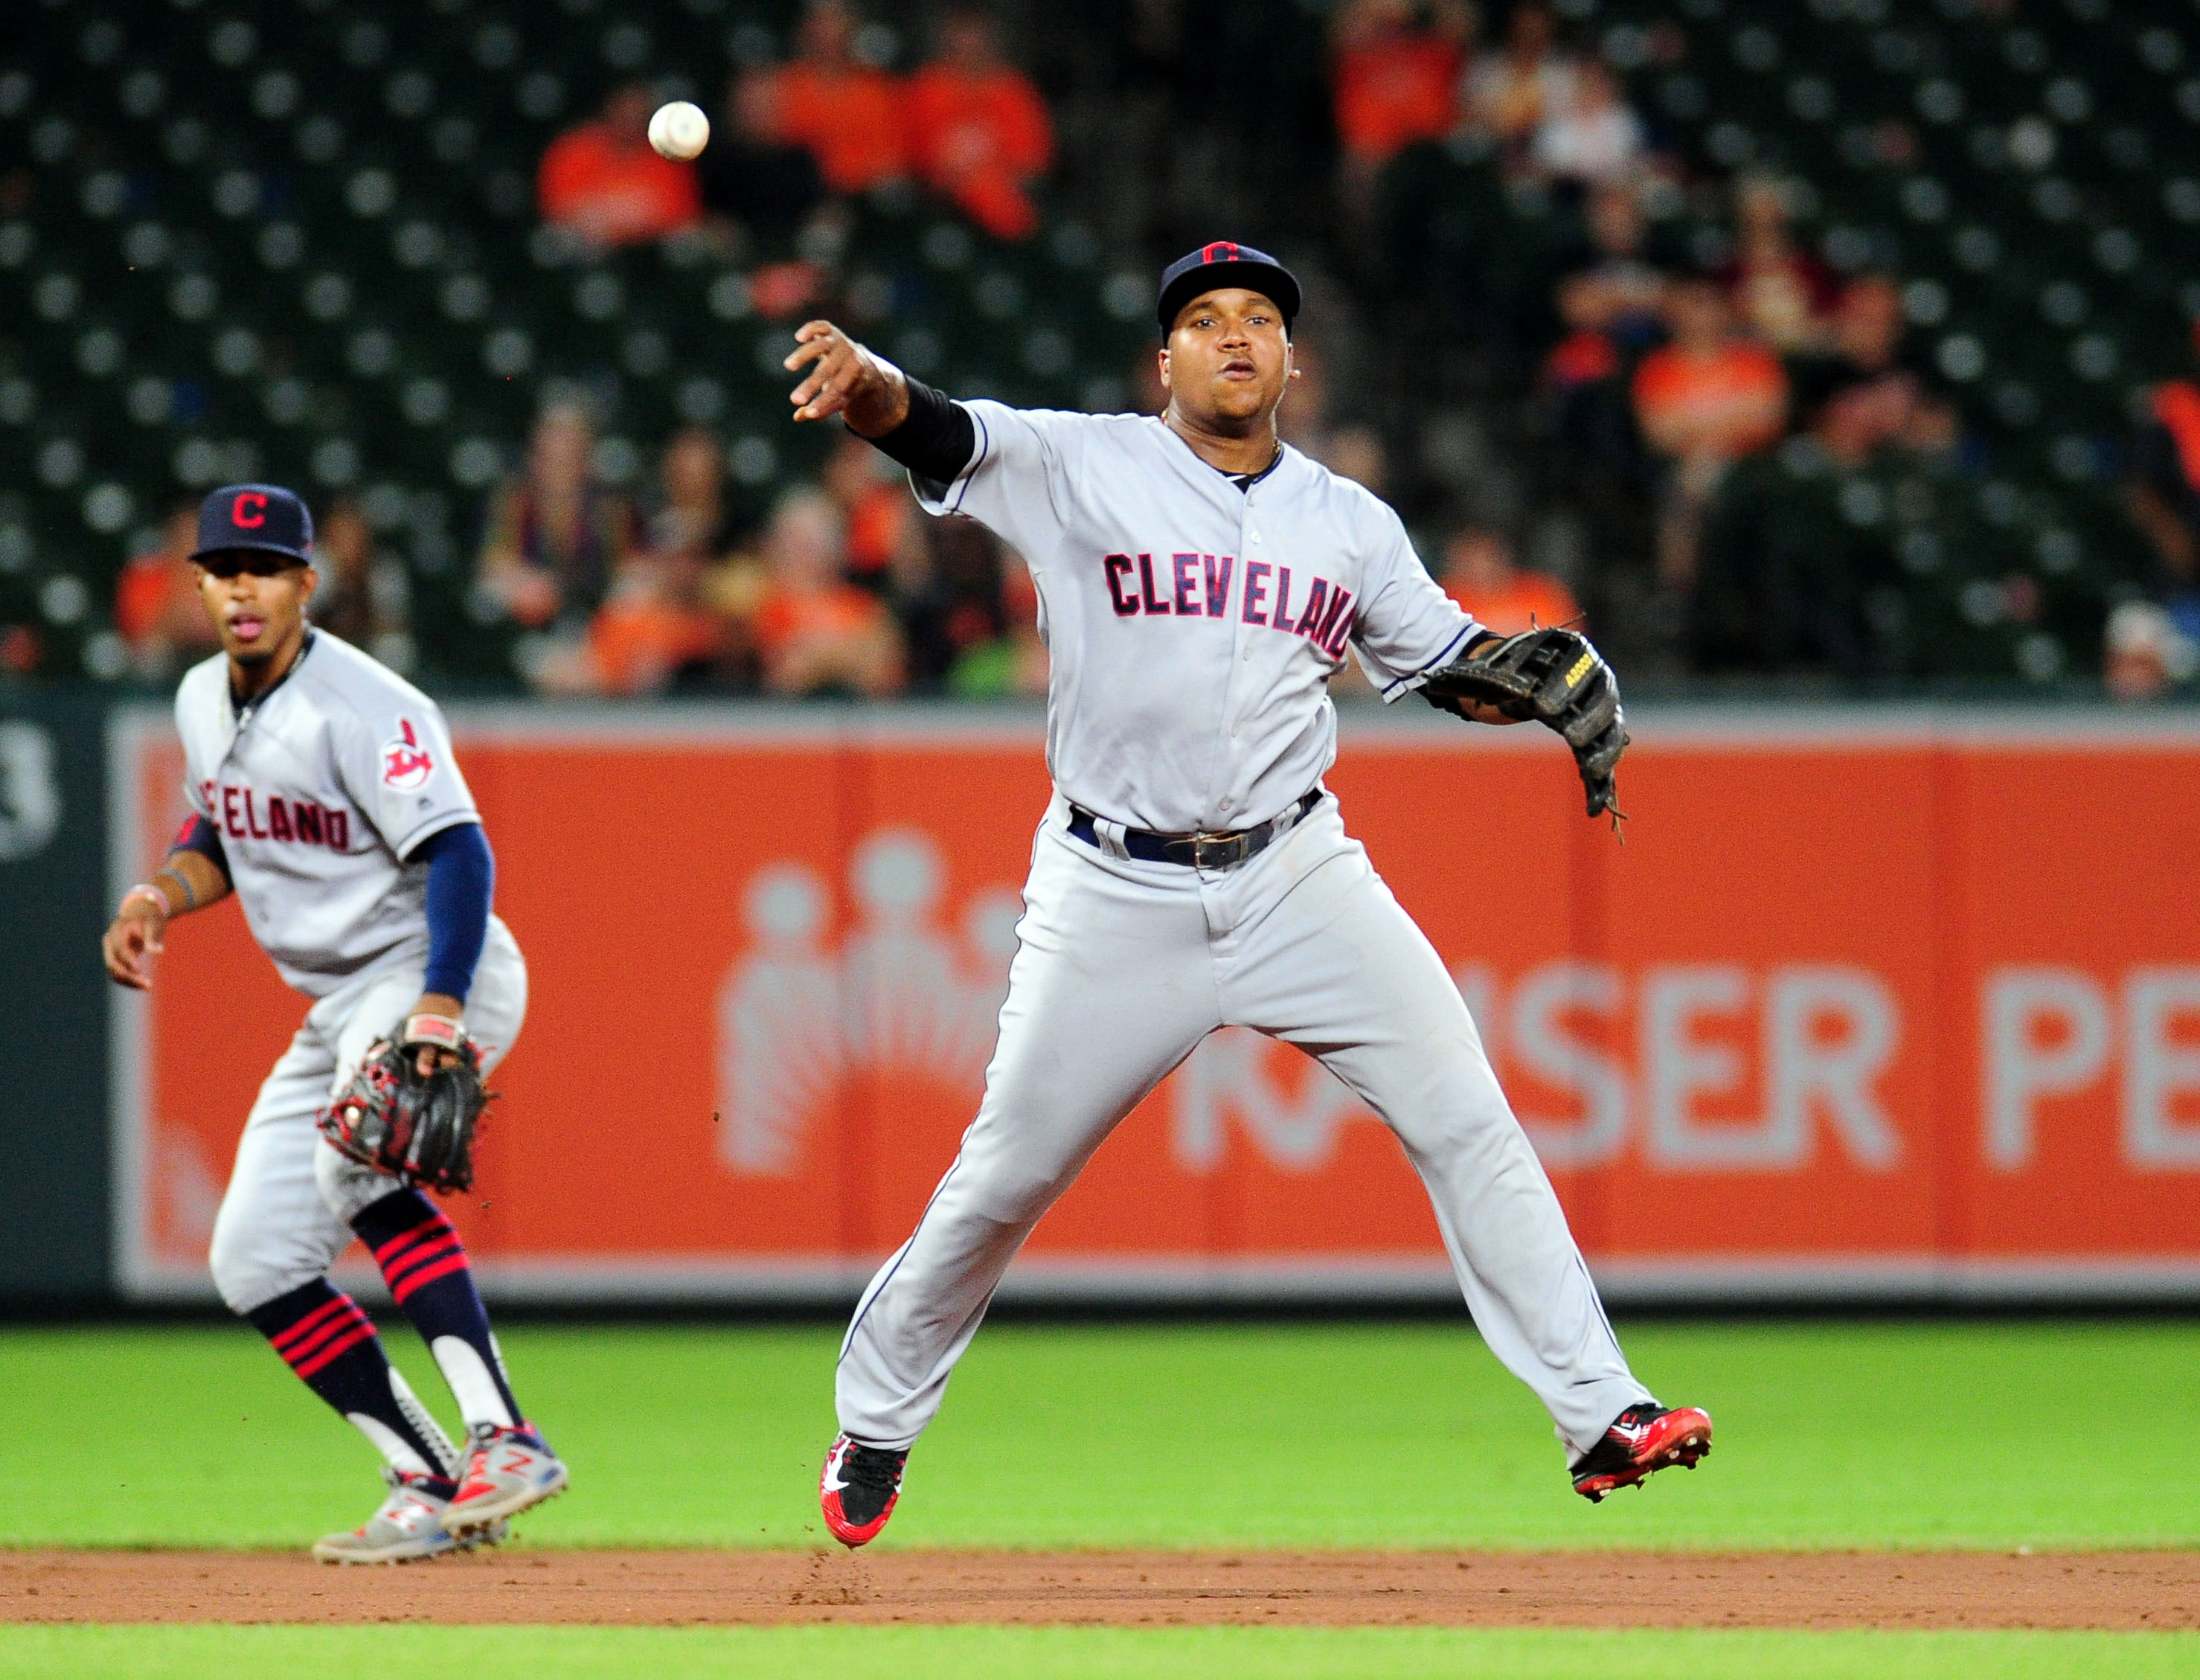 10125835-mlb-cleveland-indians-at-baltimore-orioles